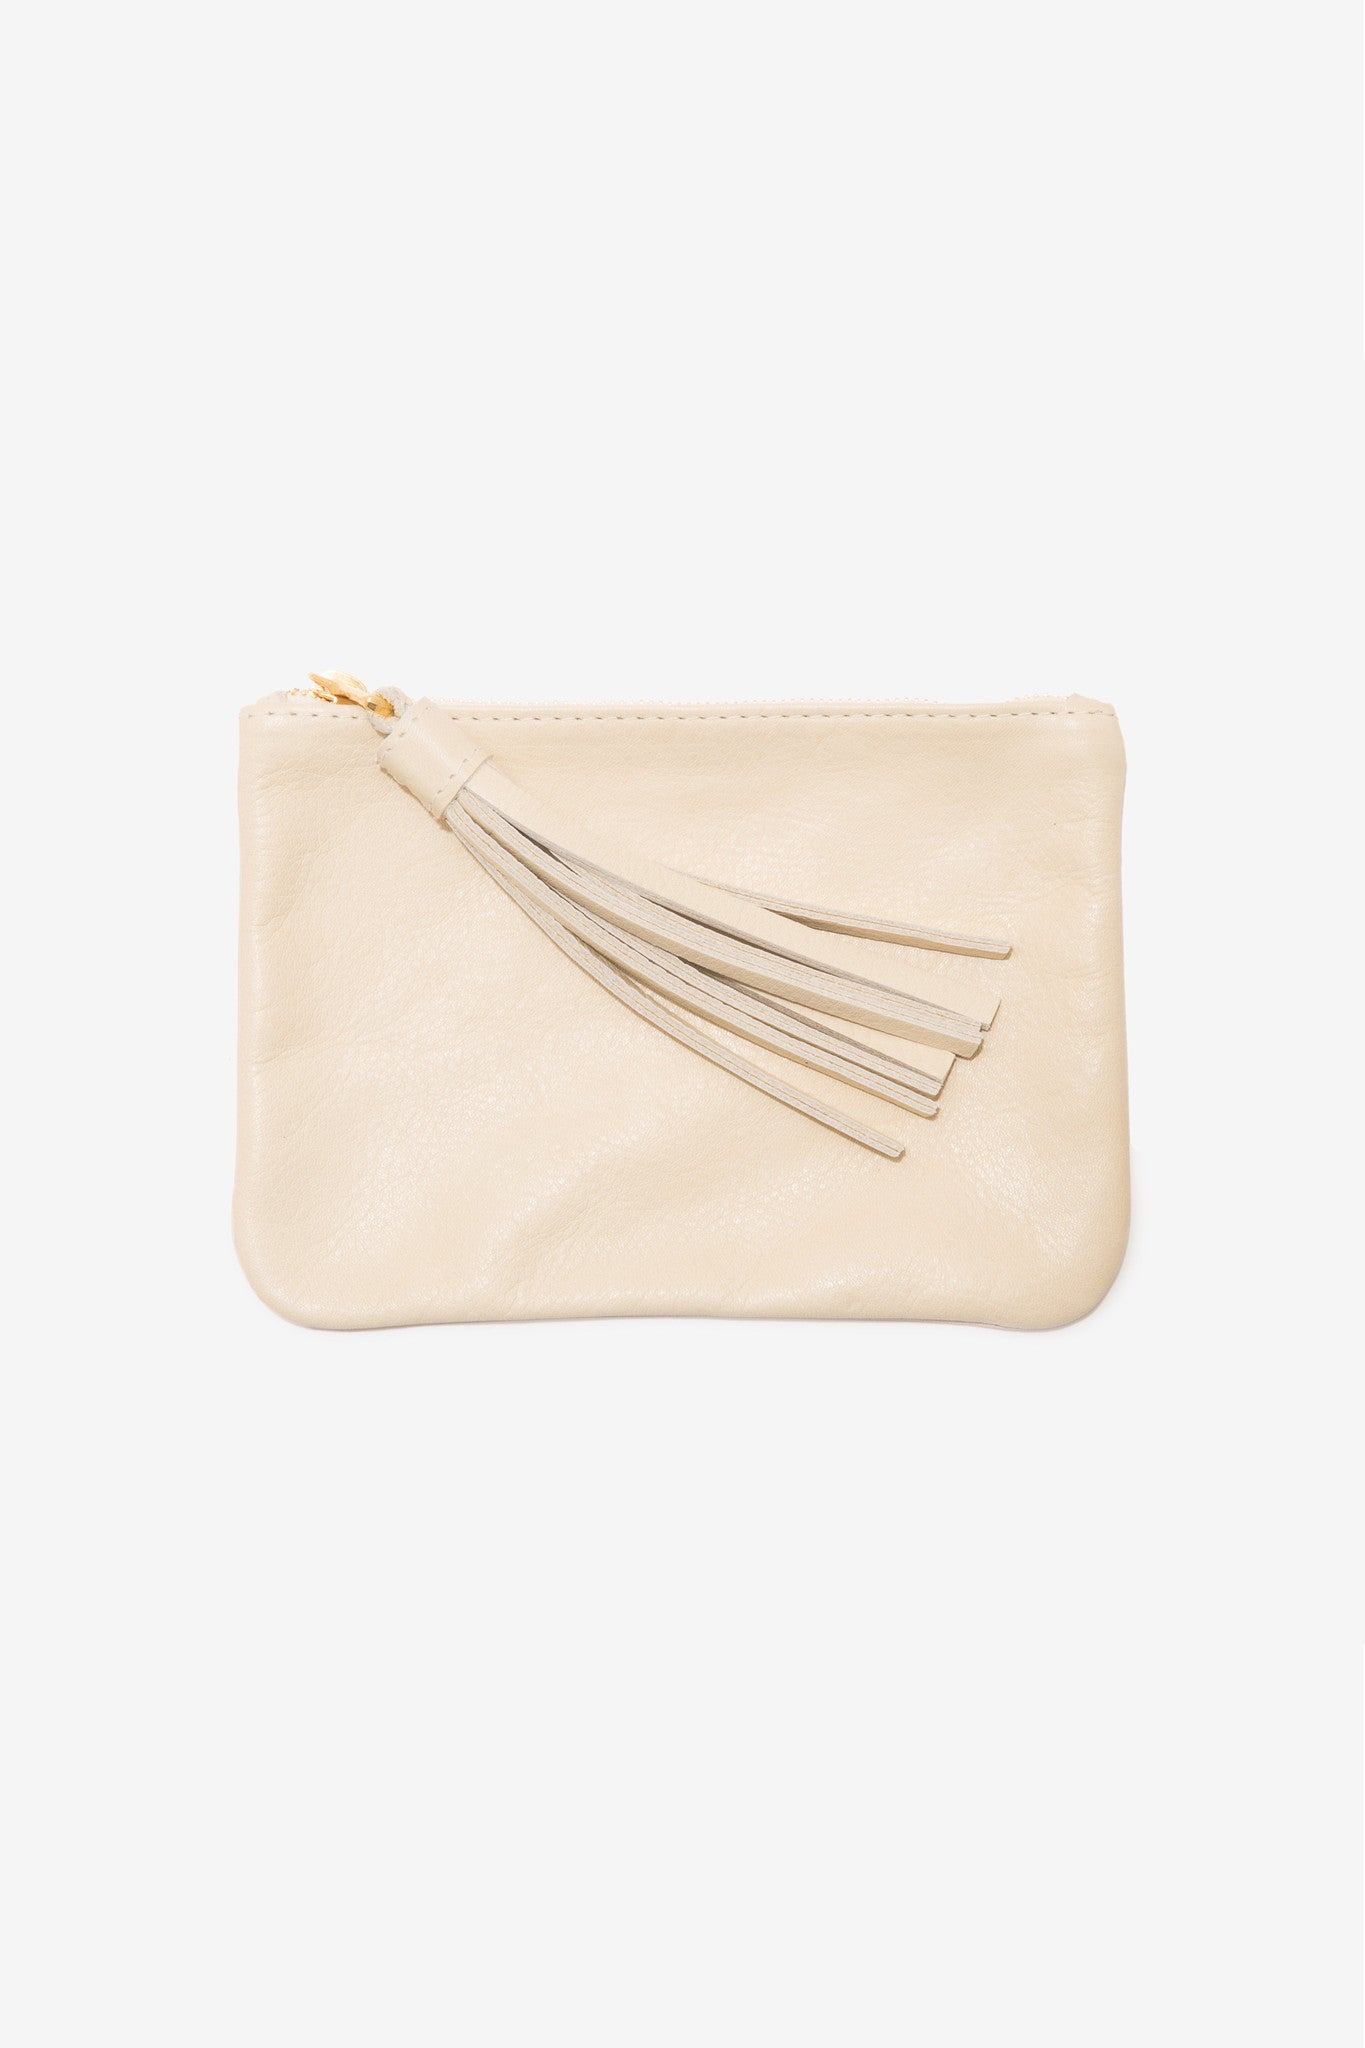 The Medium Cream Pouch is a medium leather pouch with a leather tassel zip by Moses Nadel.